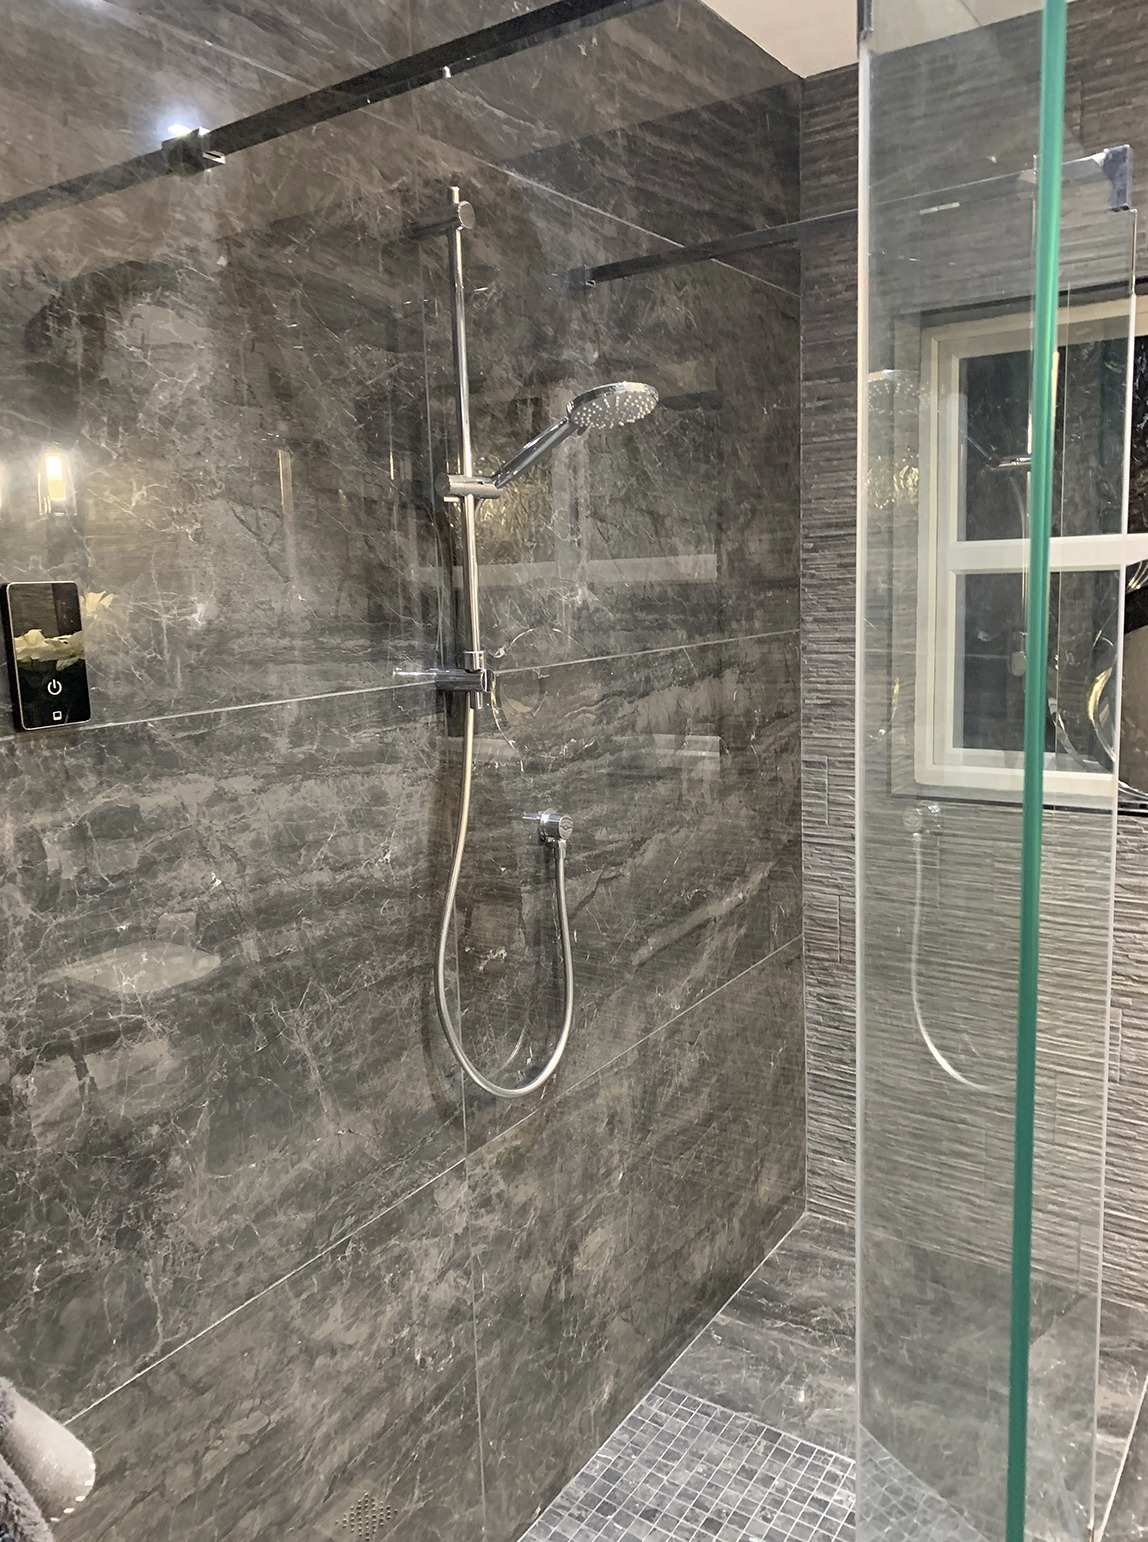 Bathroom refurbishment - wetroom